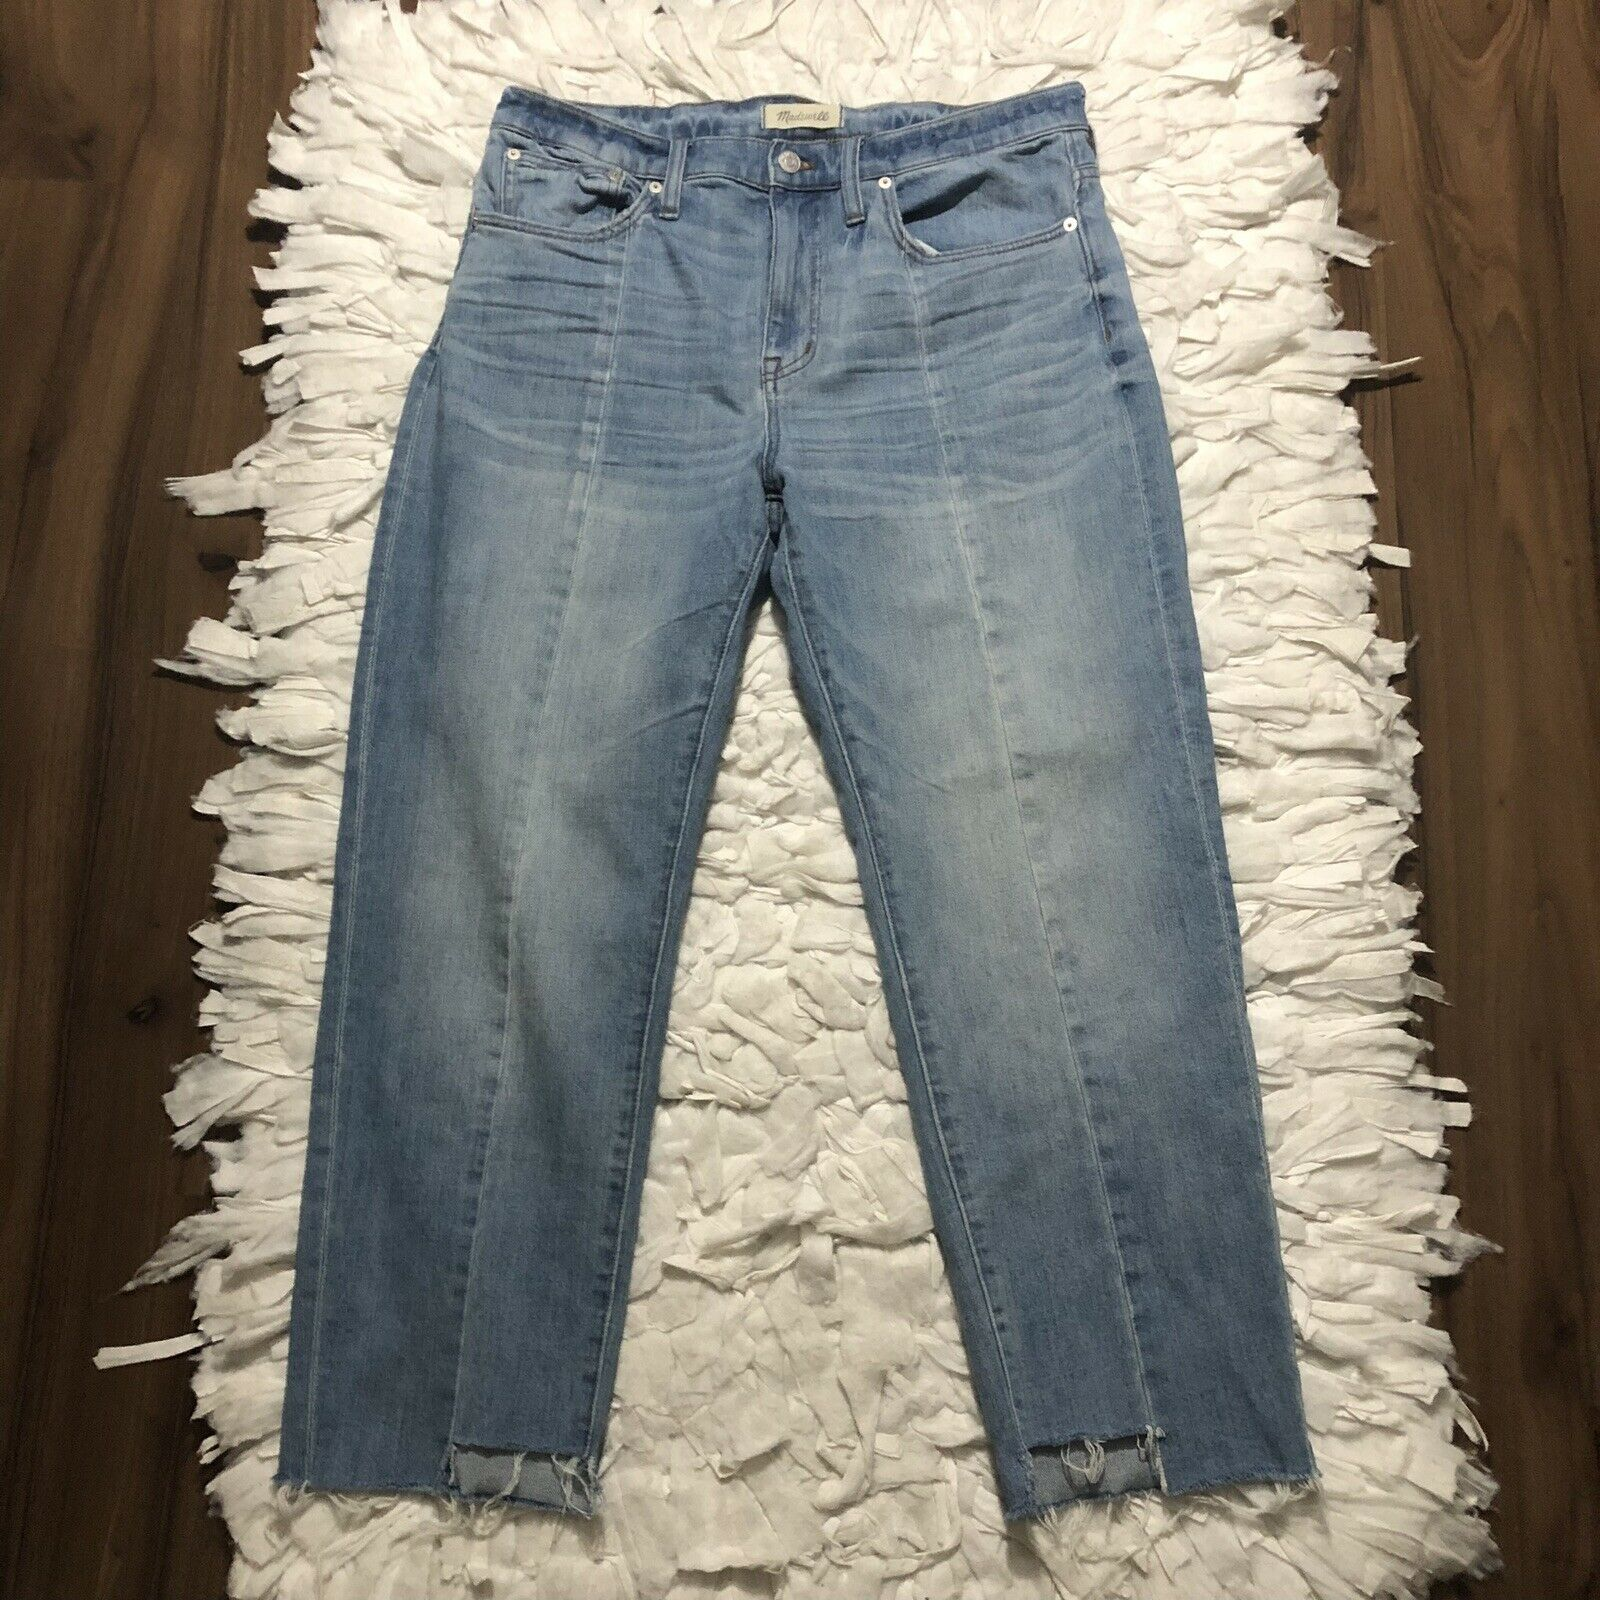 Madewell Cruiser Straight Crop Raw Hem Denim Jeans Size 31